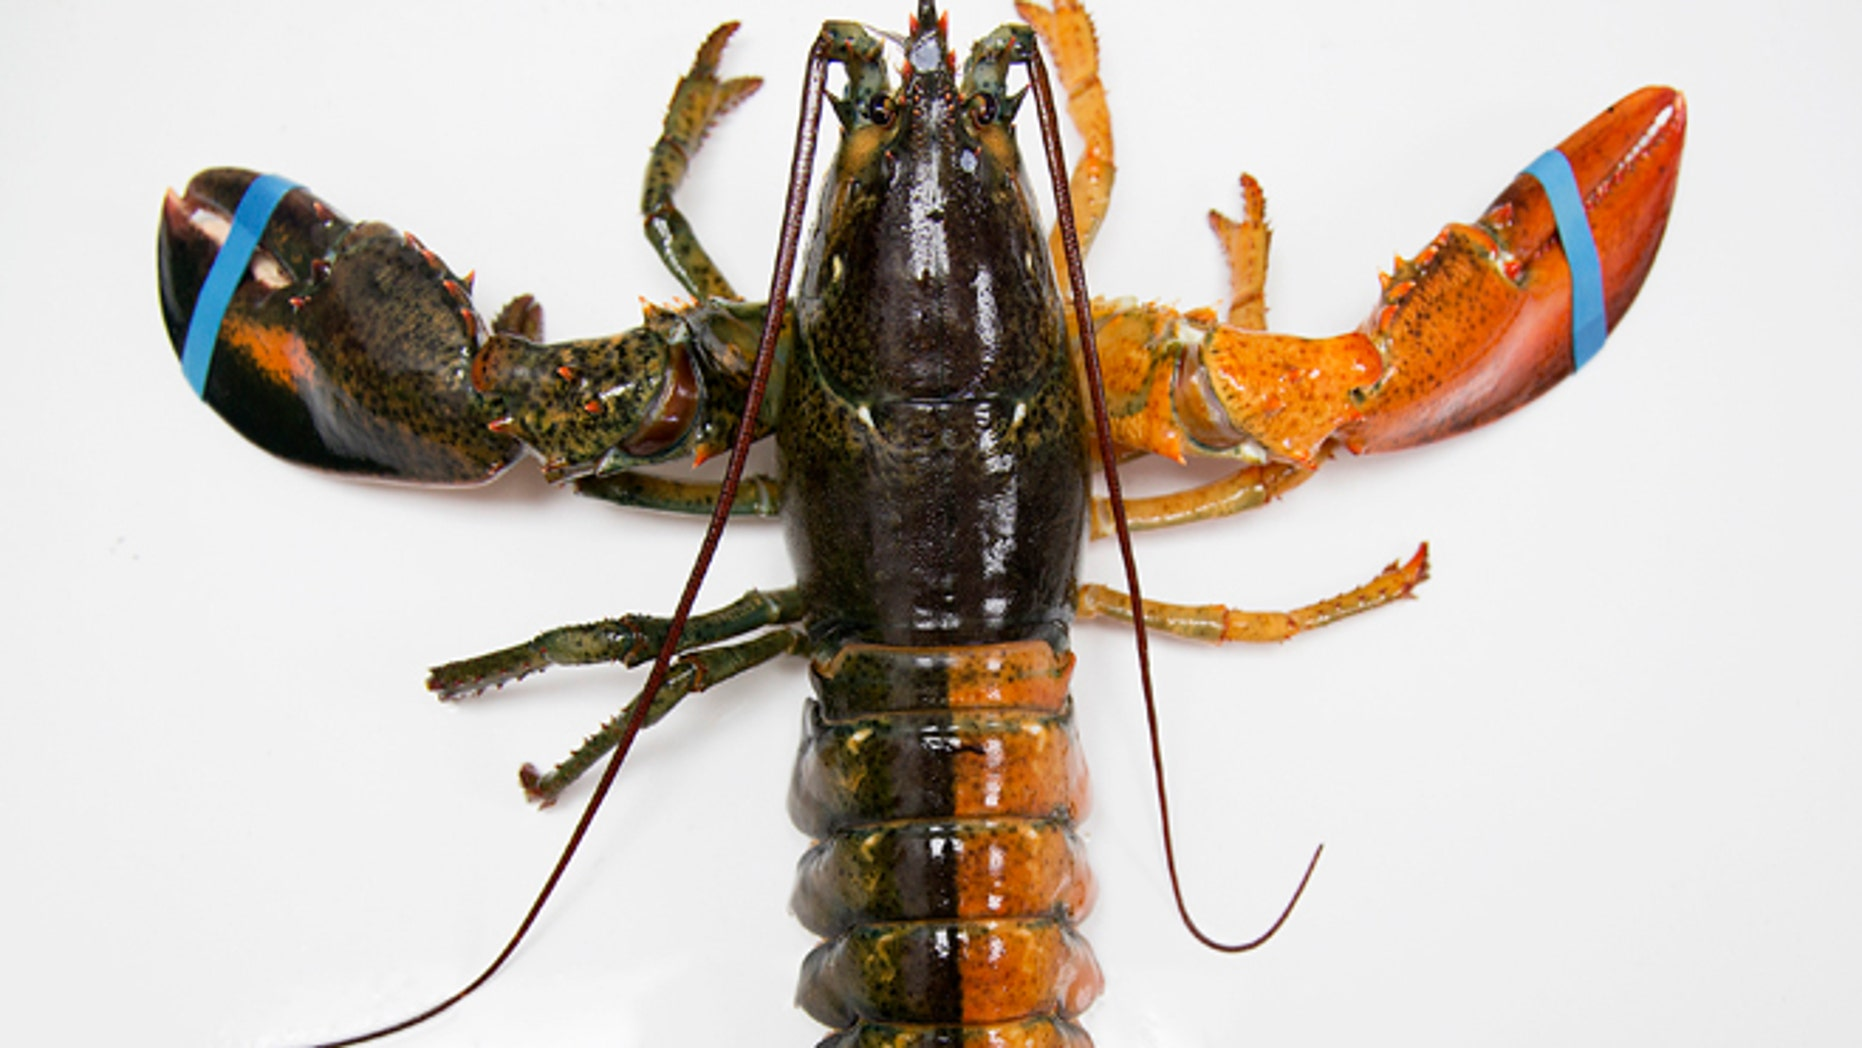 July 6, 2015: Photo shows a rare orange-brown split colored lobster that arrived recently at the Pine Point Fisherman's Co-Op in Scarborough, Me.